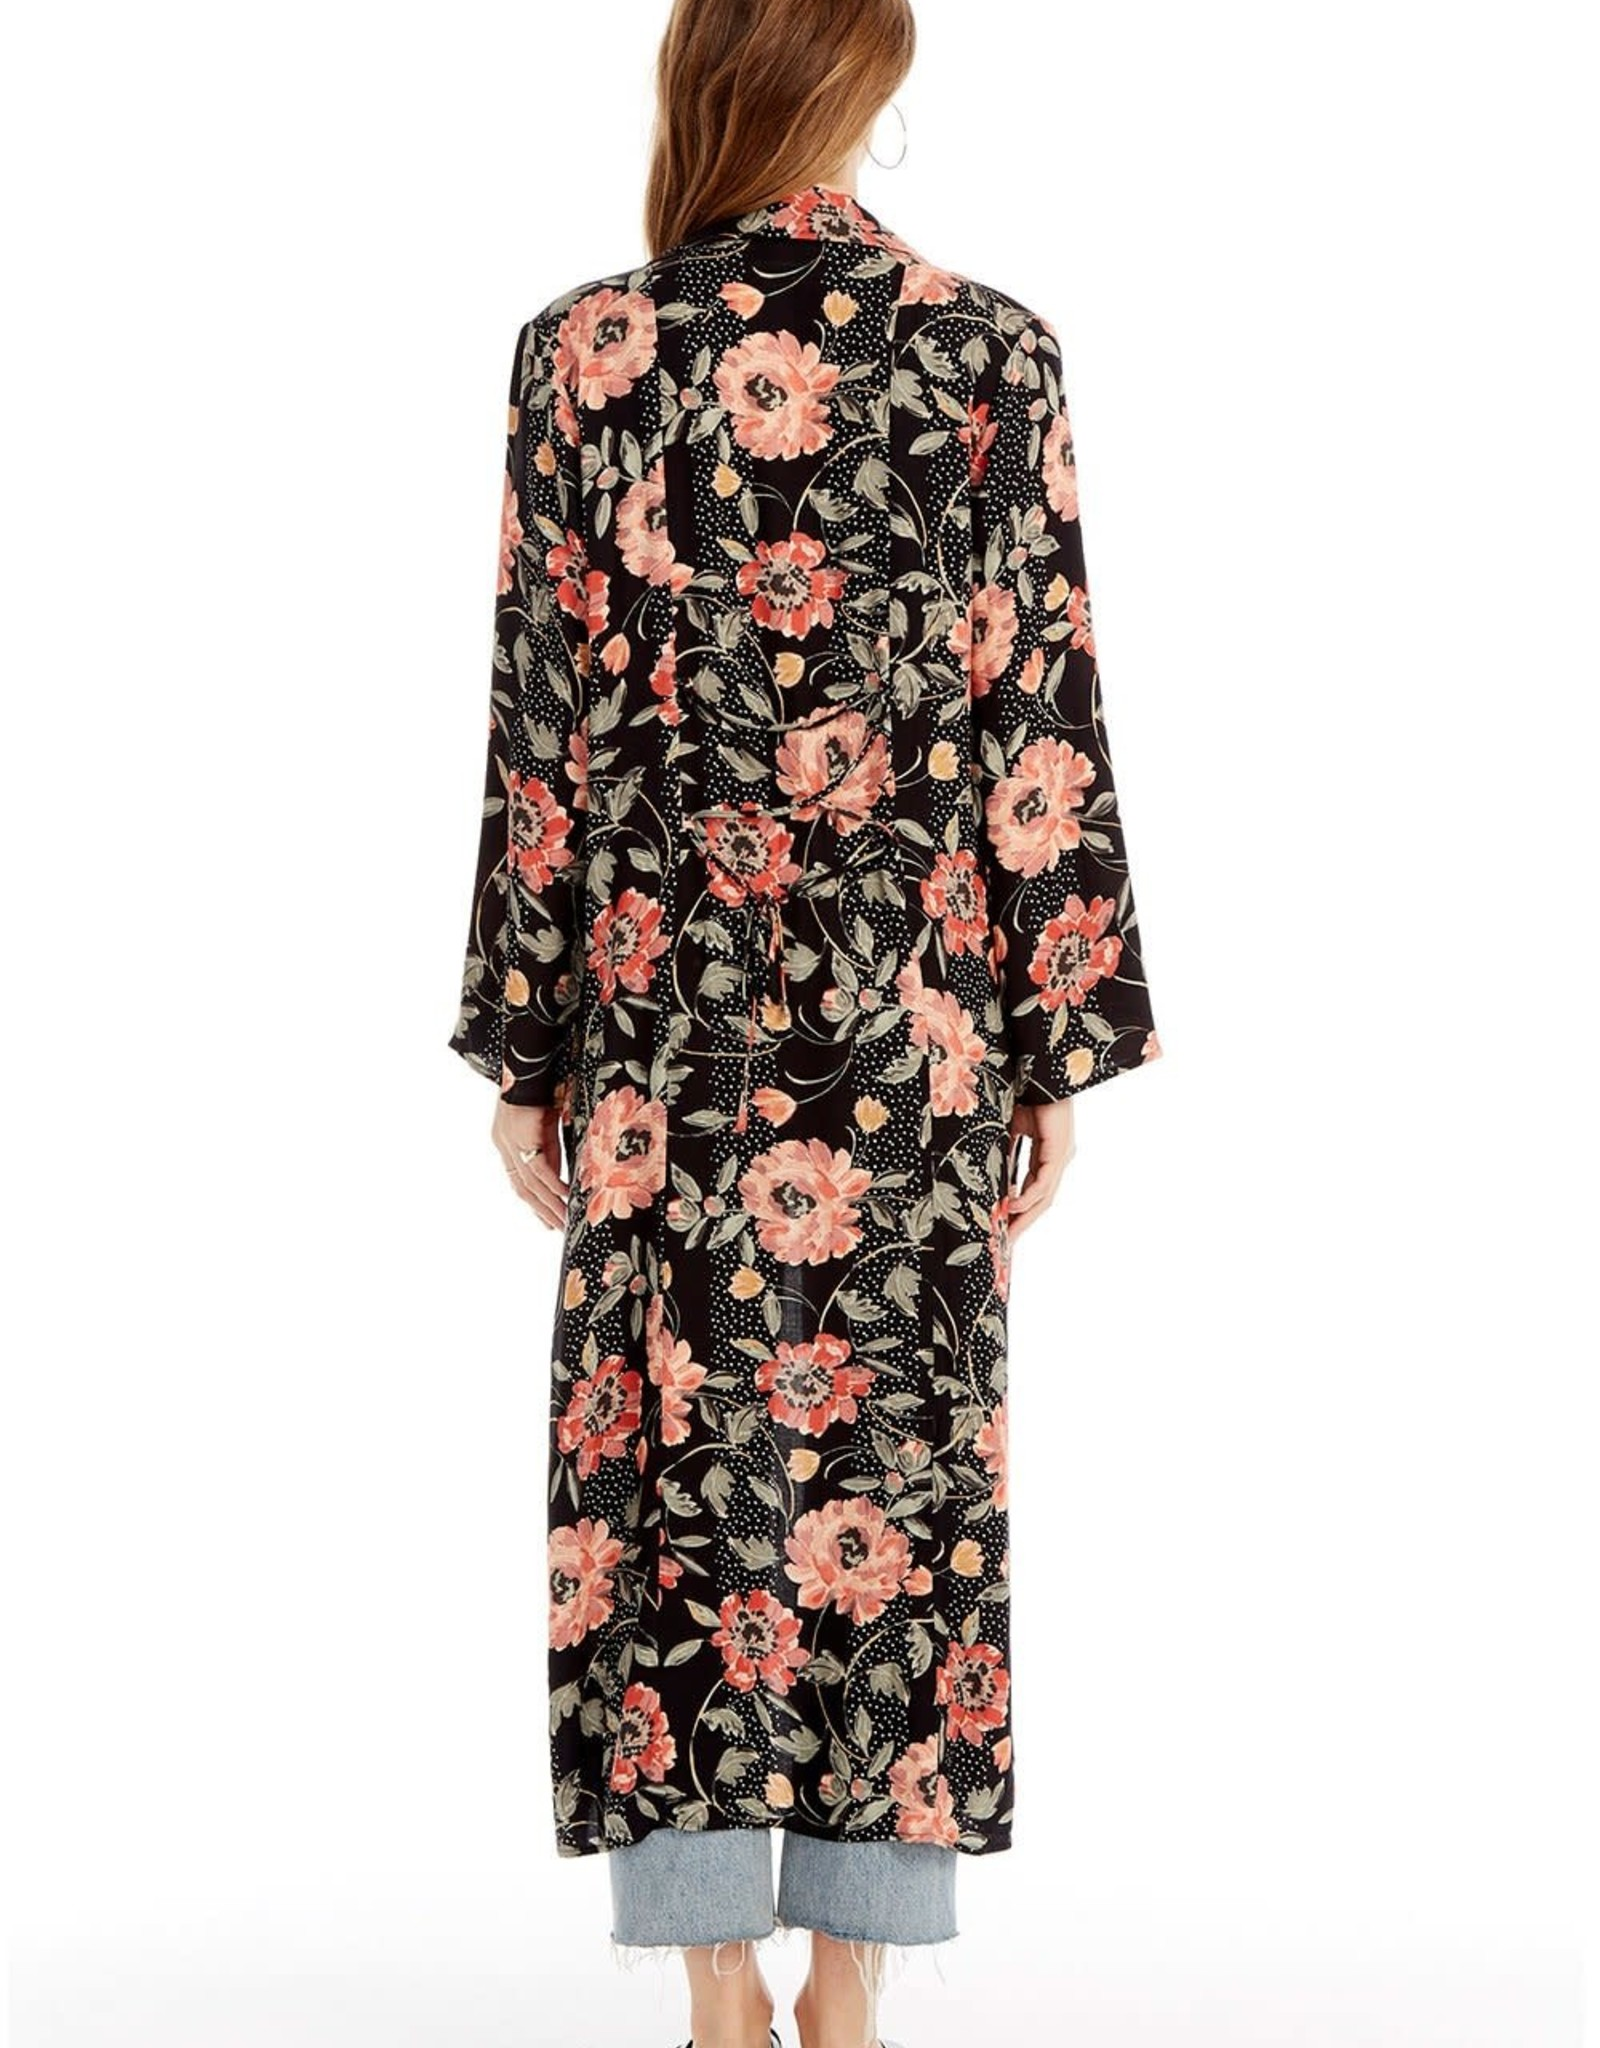 SALTWATER LUXE EMERY DUSTER, FLORAL DOT IN BLACK